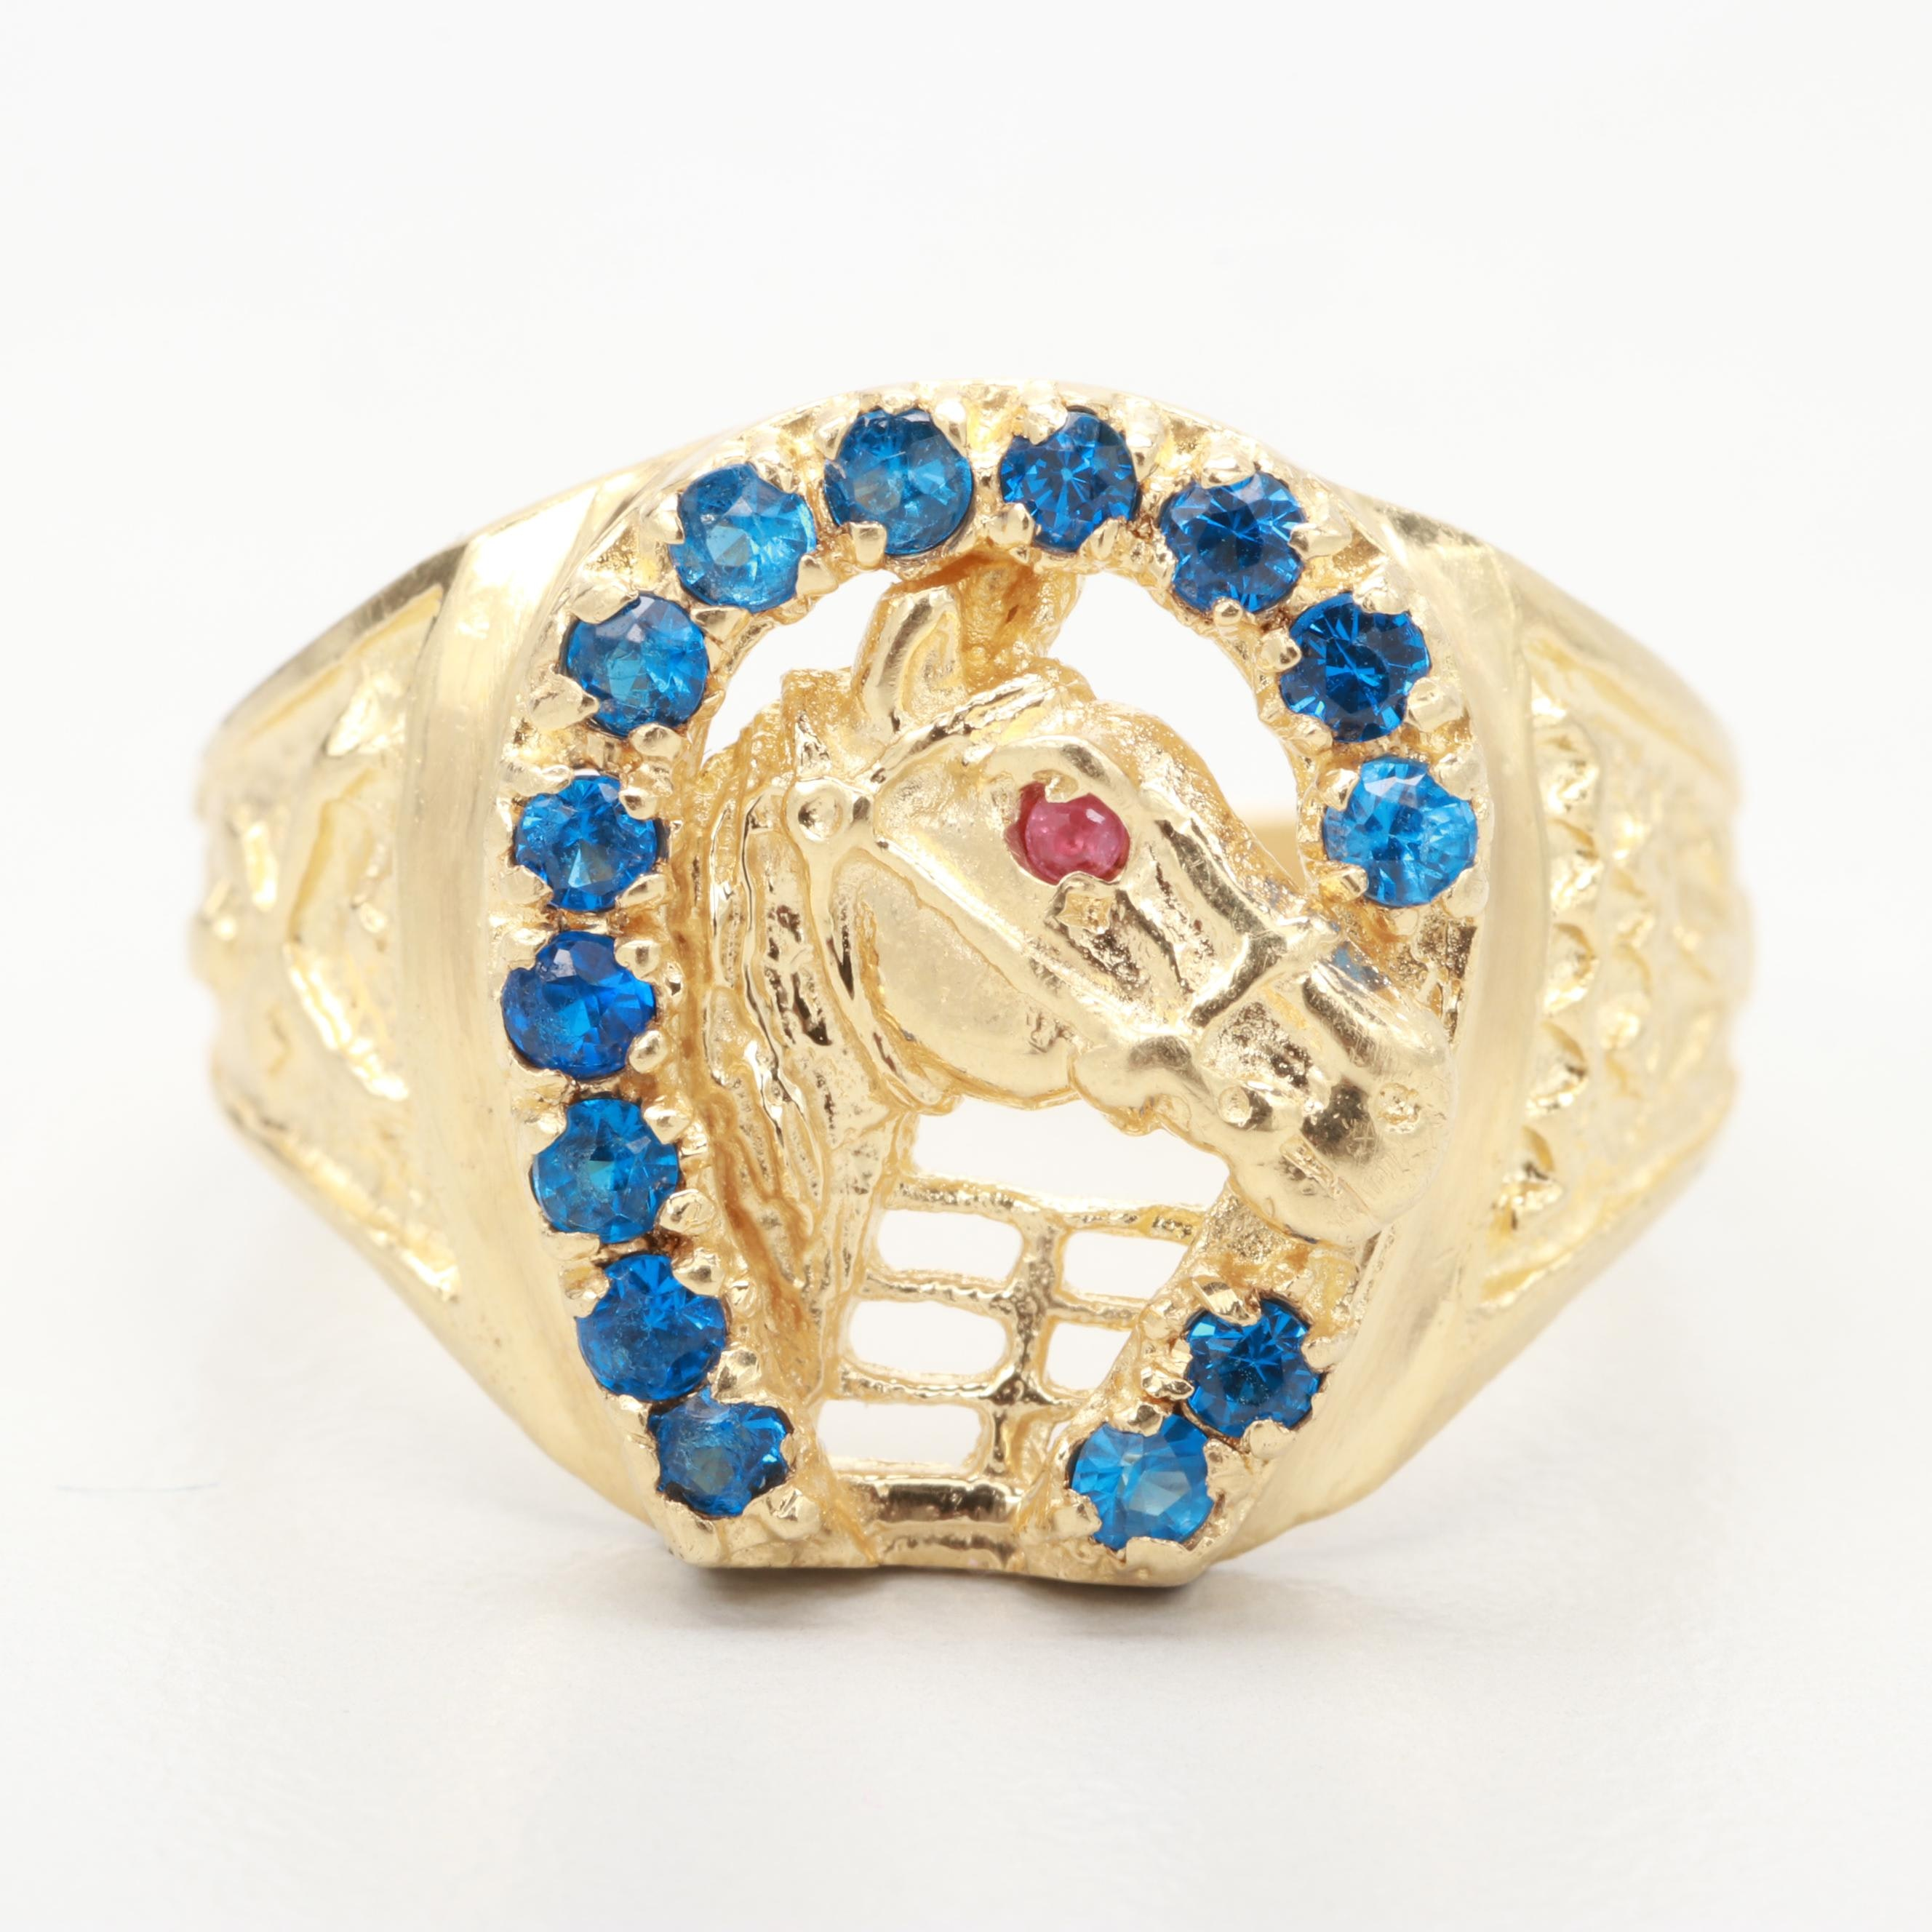 14K Yellow Gold Synthetic Spinel and Ruby Horse in Horse Shoe Ring